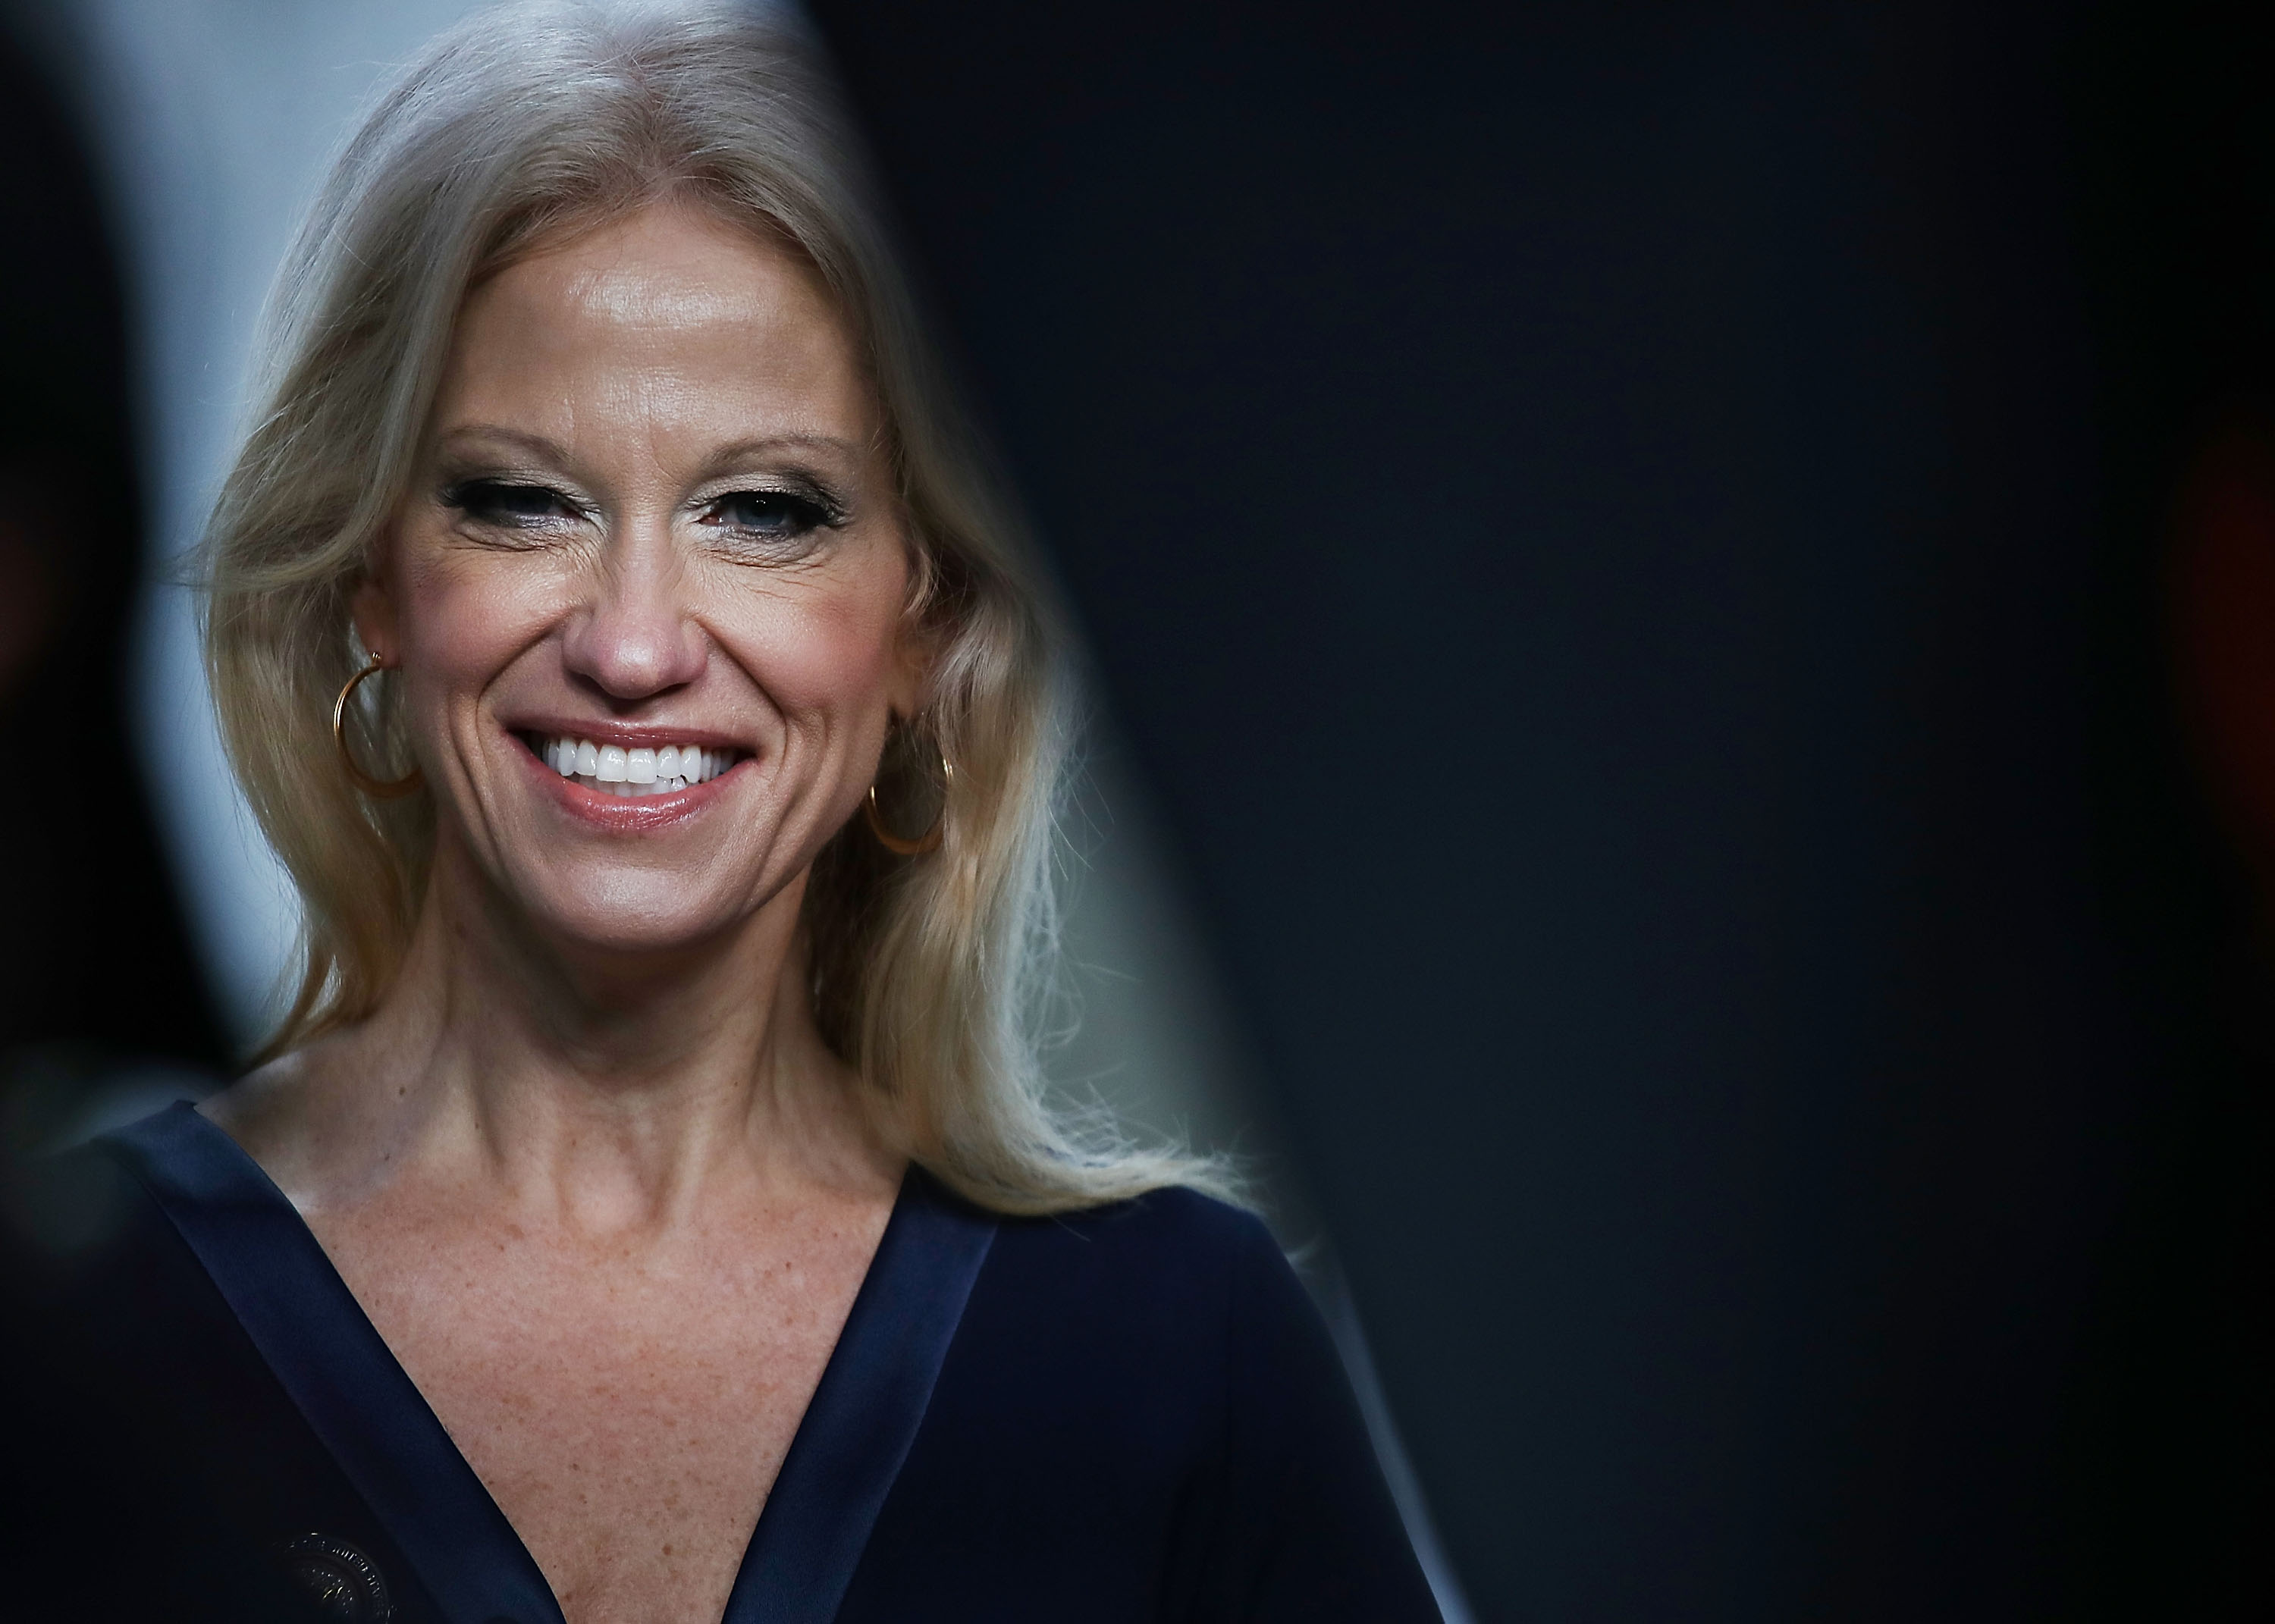 Kellyanne Conway finally admits the audit was just an excuse